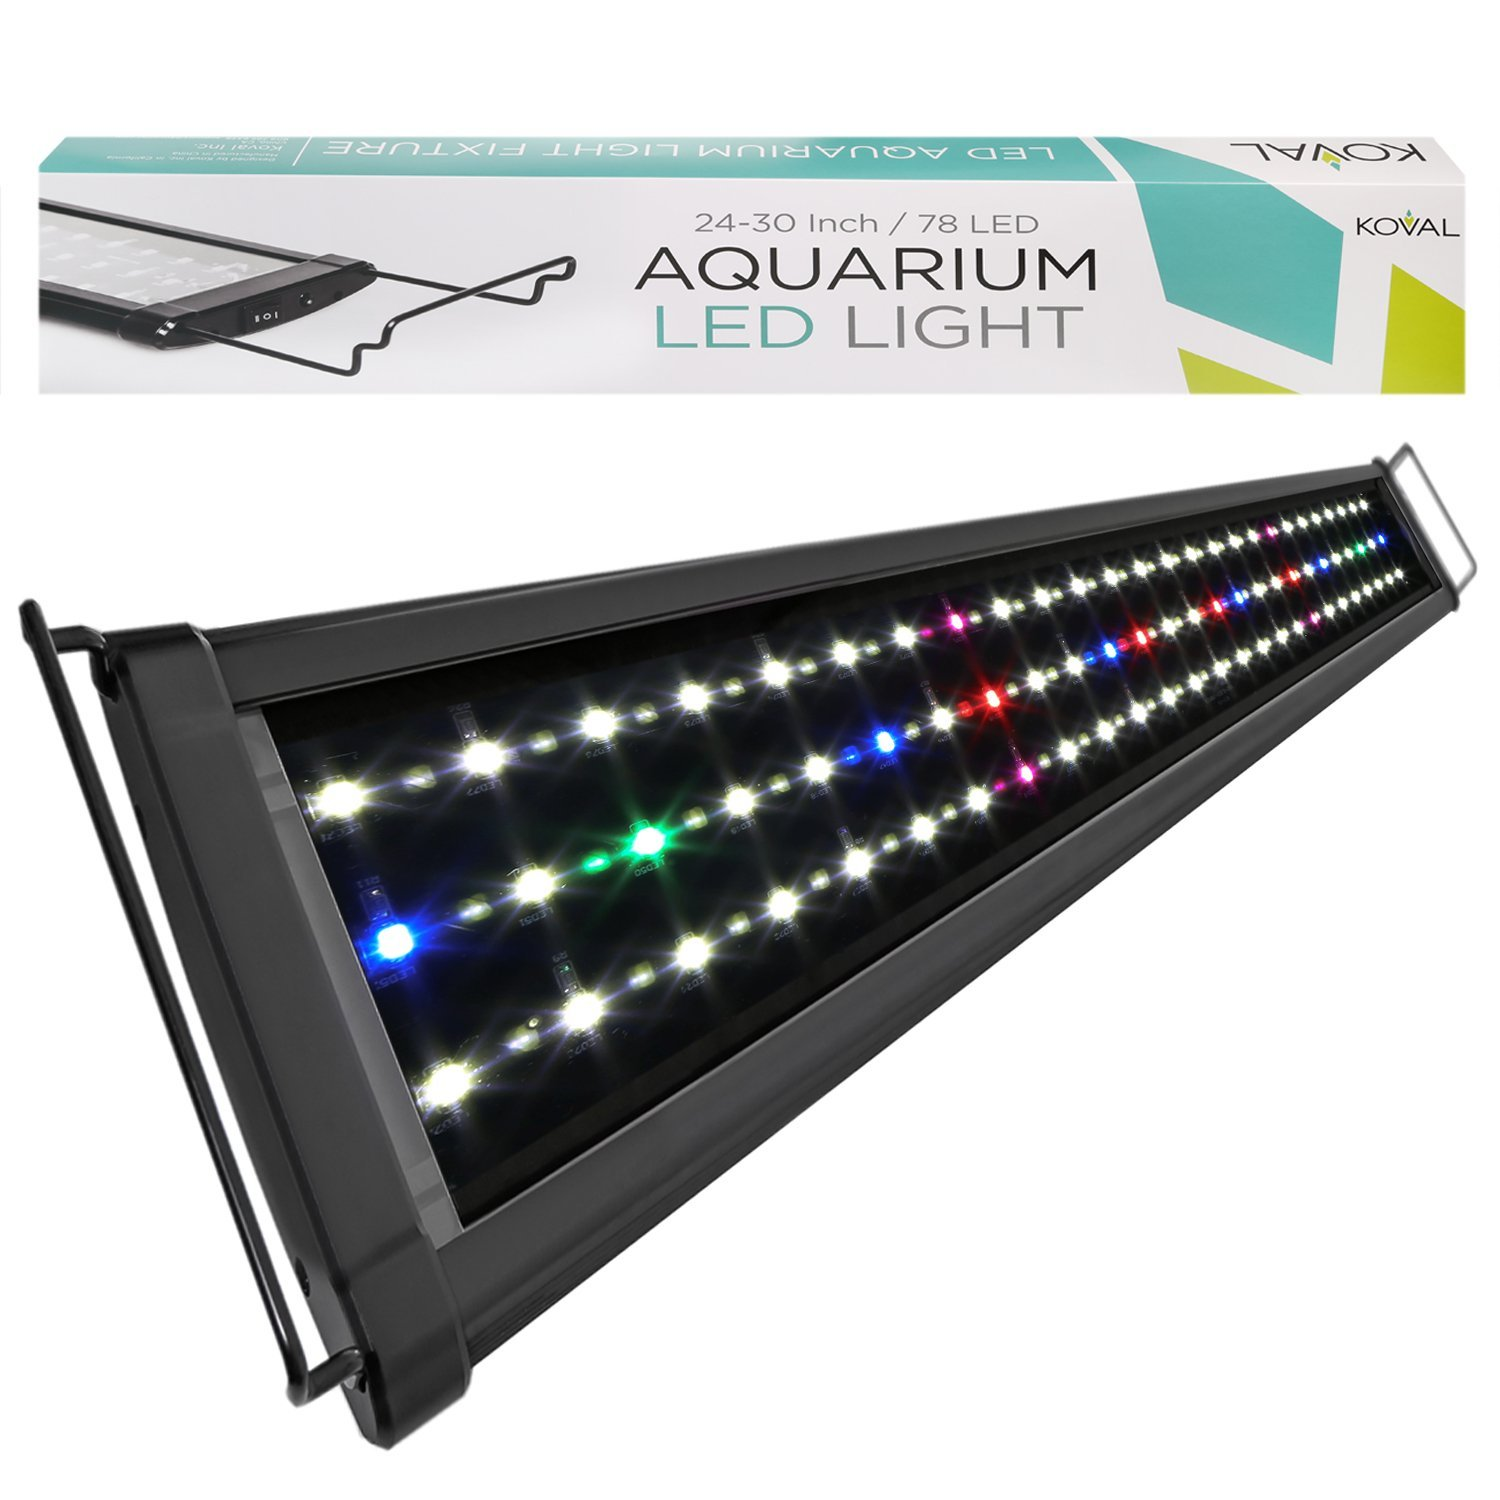 Koval Inc. 78 LED Aquarium Lighting for 24 inch - 30 inch Fish Tank Light Hood